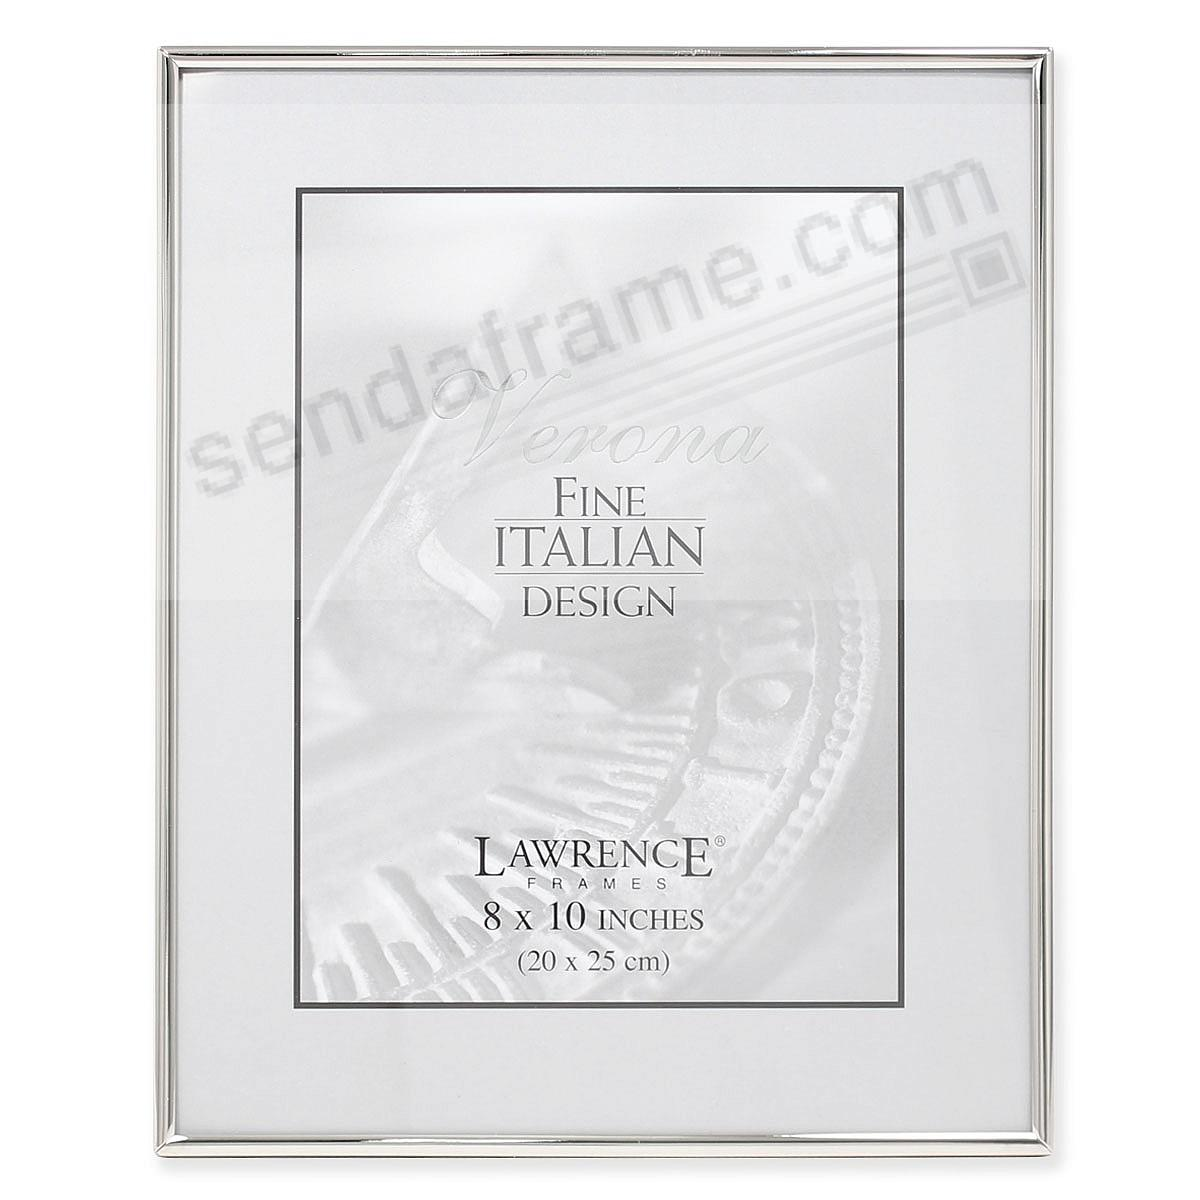 Lawrence® Polished SIMPLY SILVER 8x10 frame